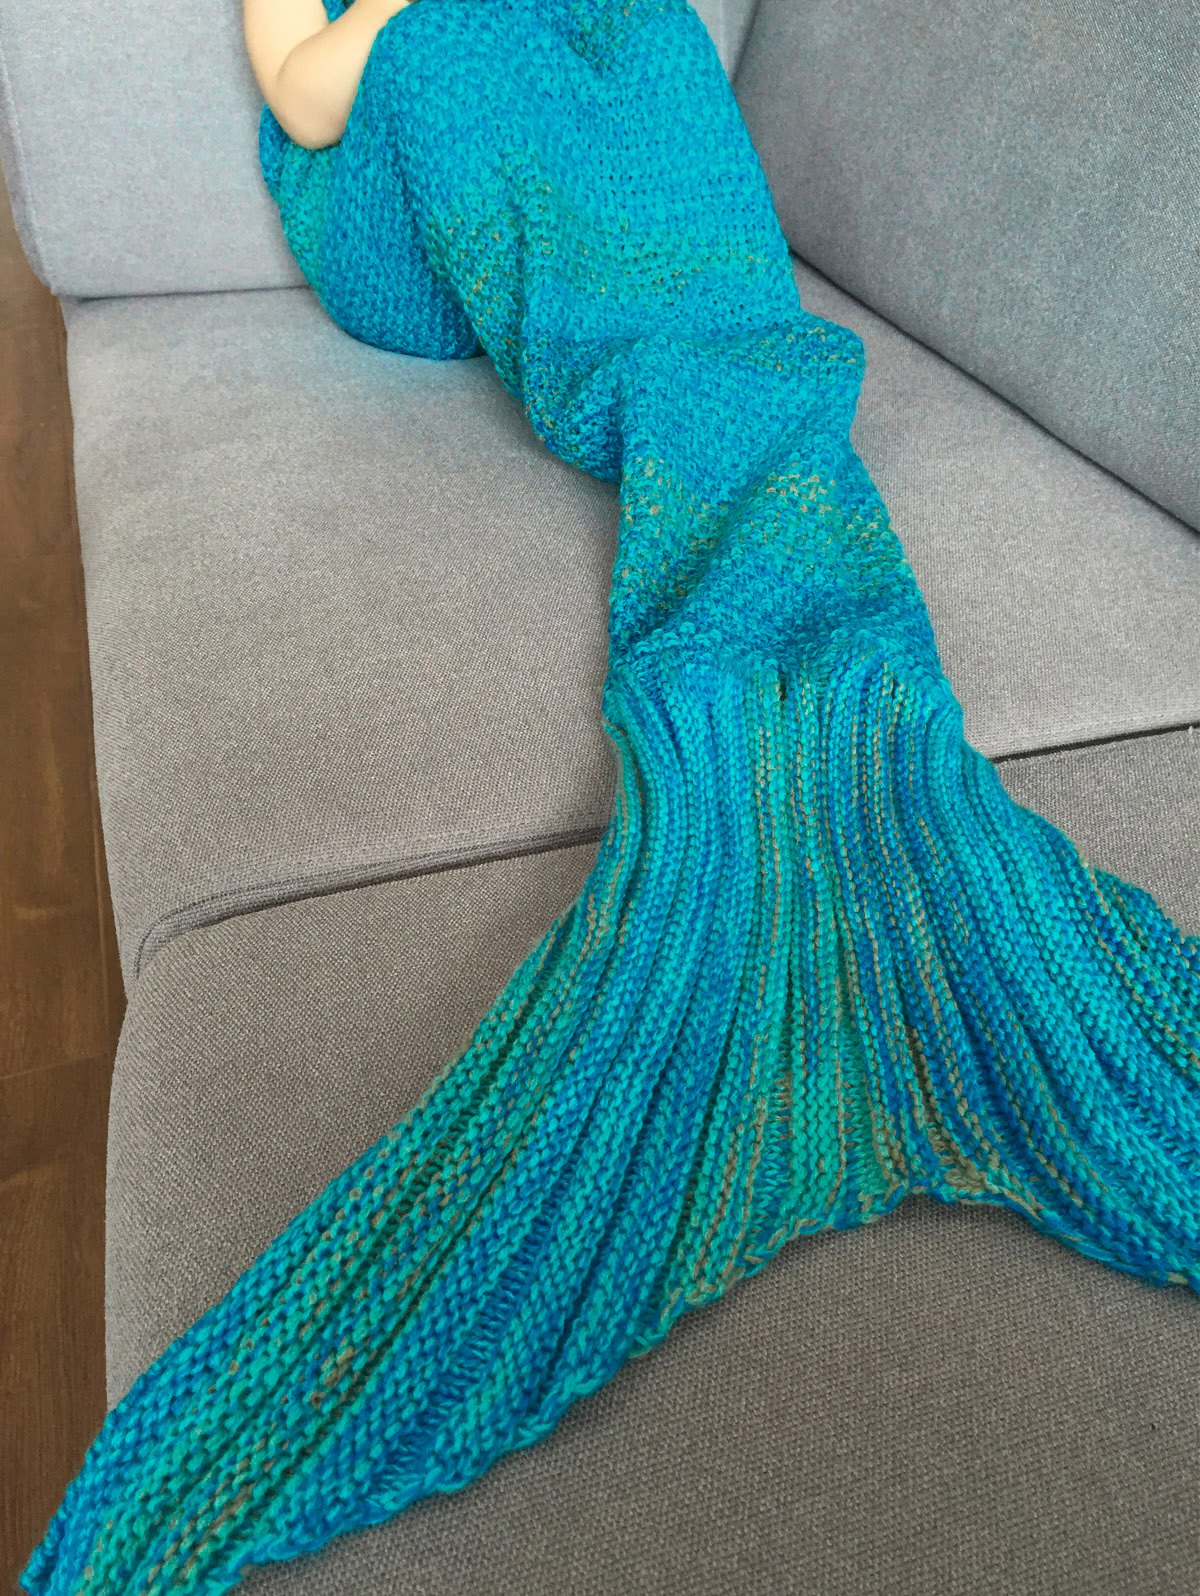 Stripe Knitted Mermaid Tail Design Blanket